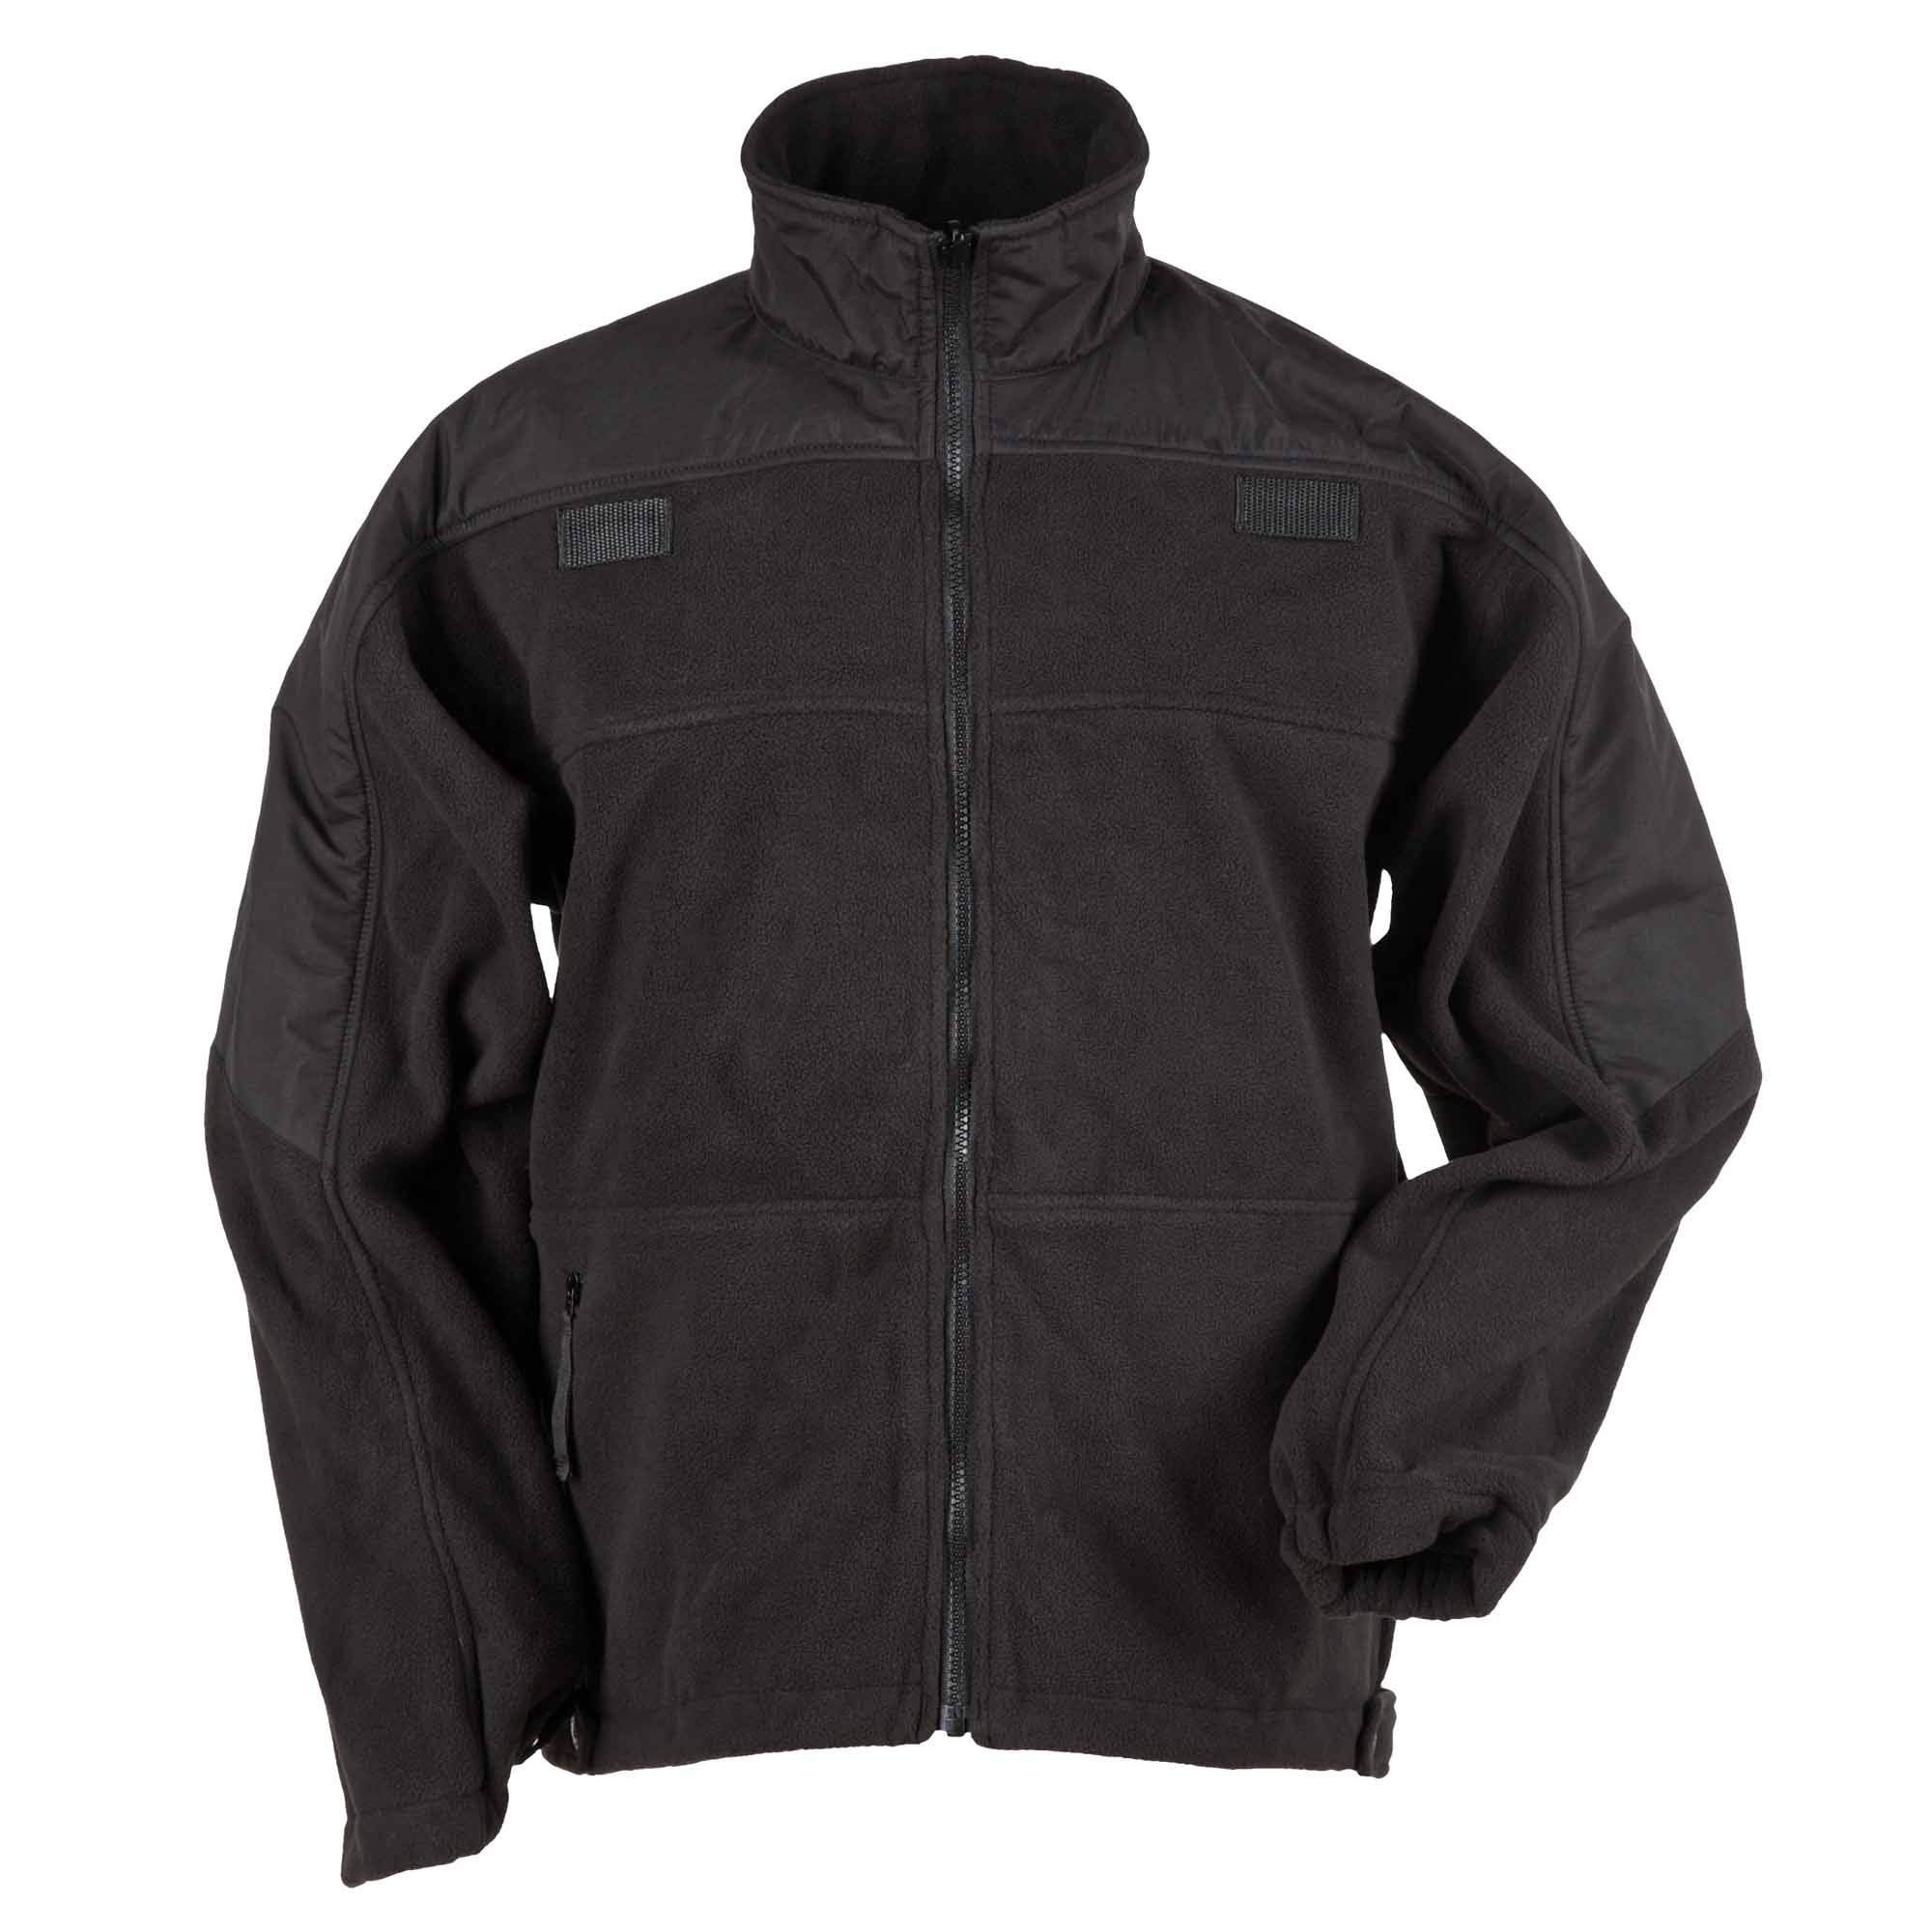 5.11 Tactical 3-in-1 Reversible Parka, High Visibility, 3M Scotchlite Reflective Tape, Style 48033 by 5.11 (Image #3)